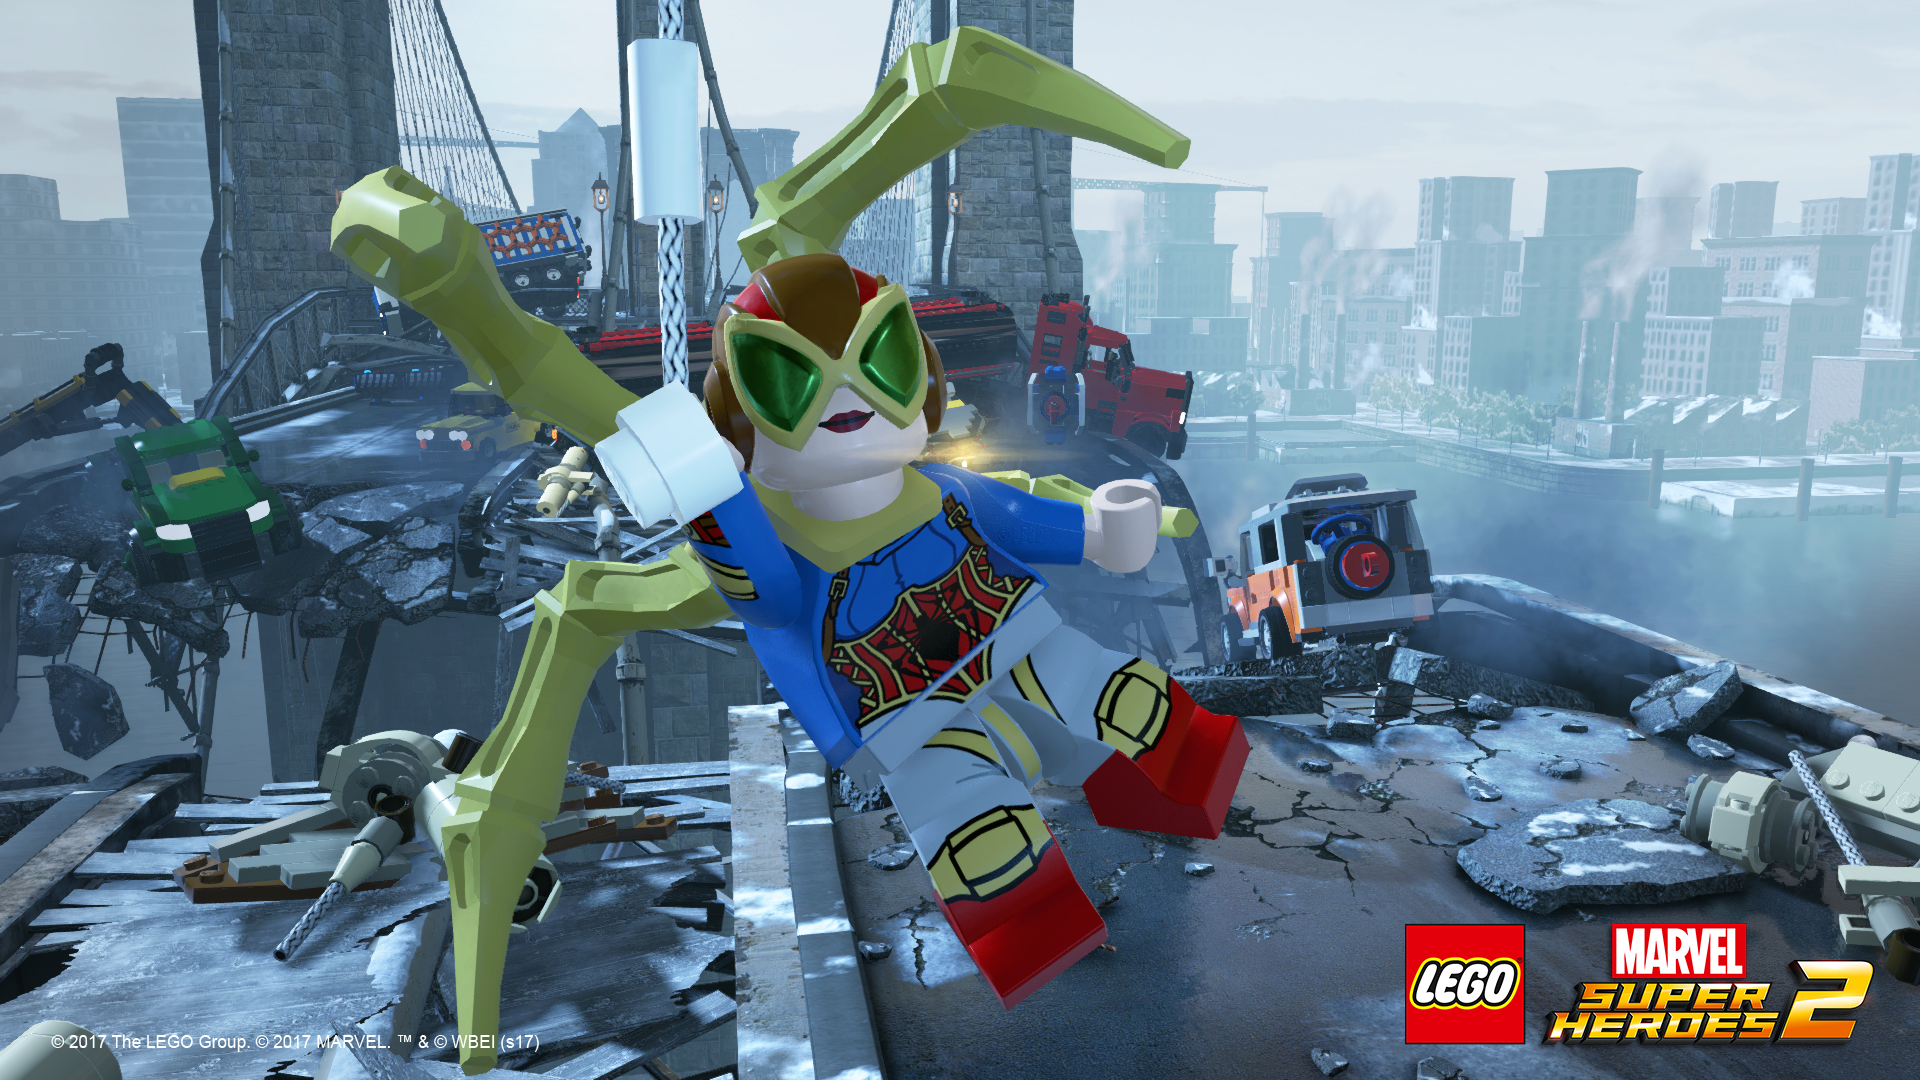 LEGO_Marvel_Super_Heroes_2_-_Lady_Spider_1507794996